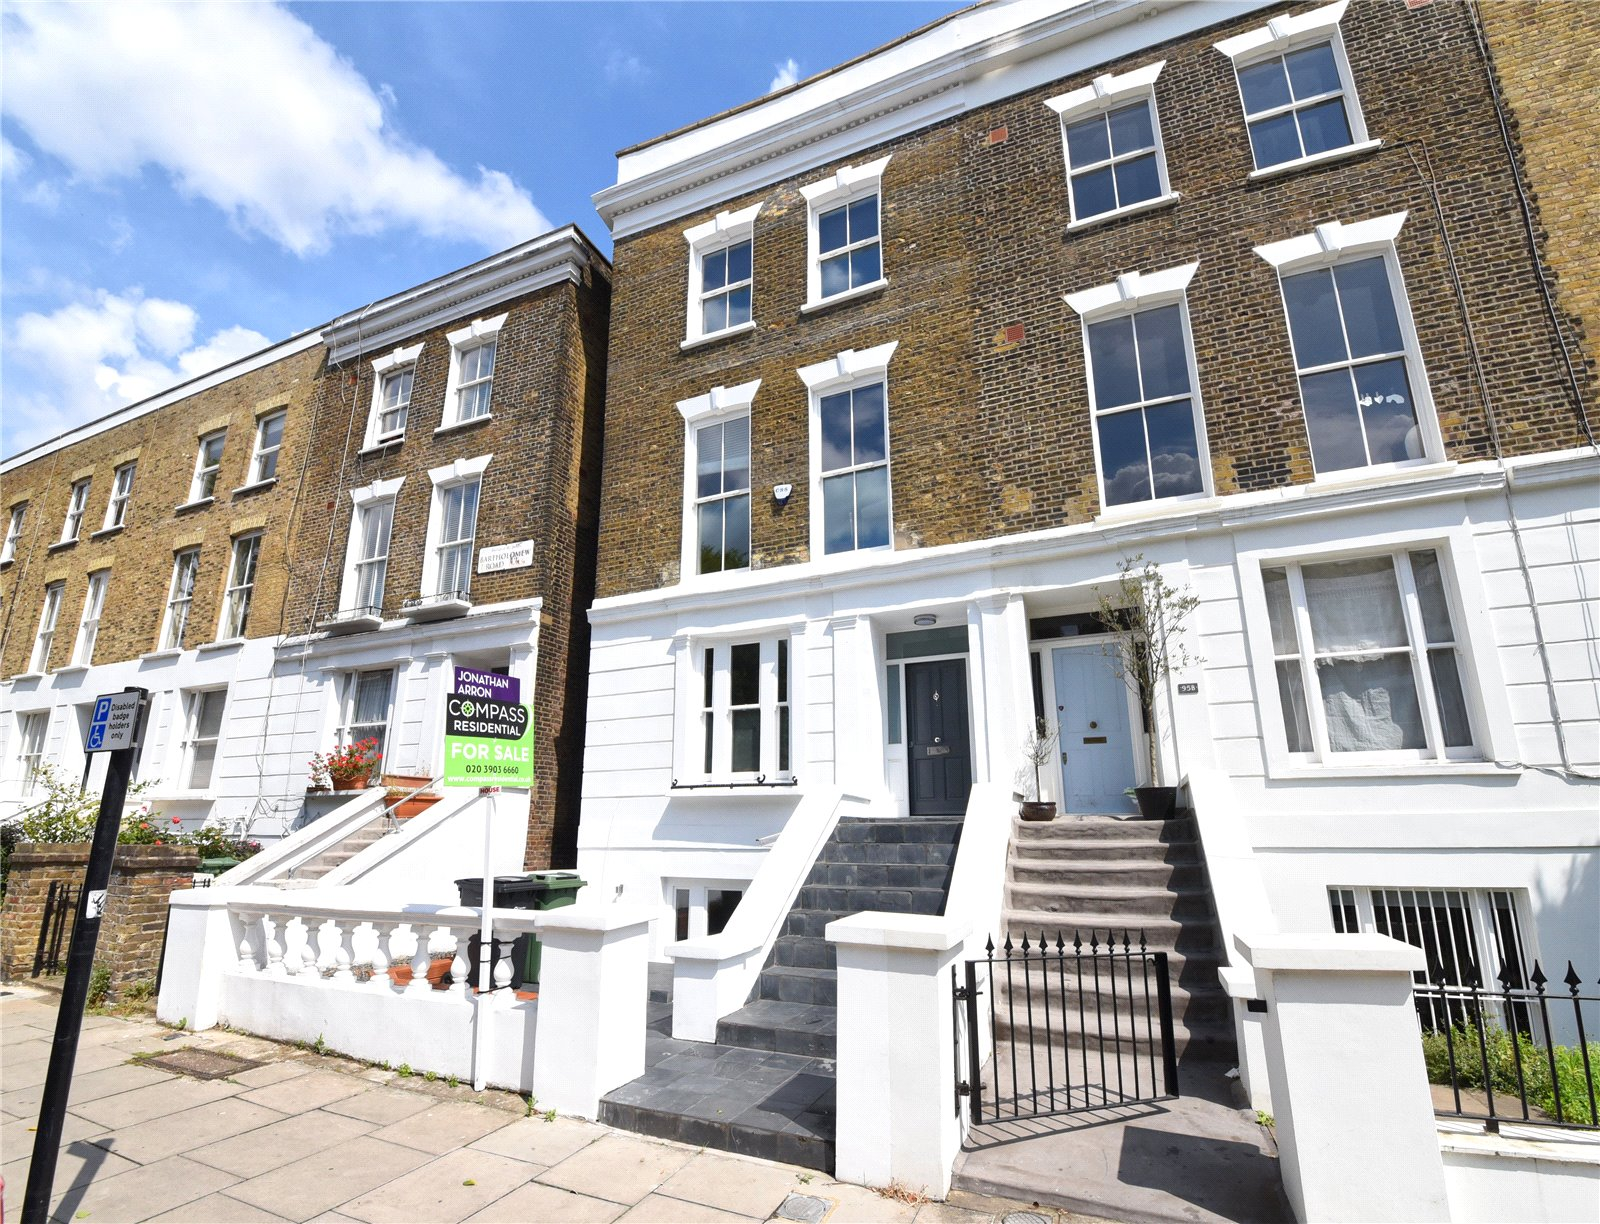 4 bed house for sale in Kentish Town, NW5 2AR - Property Image 1